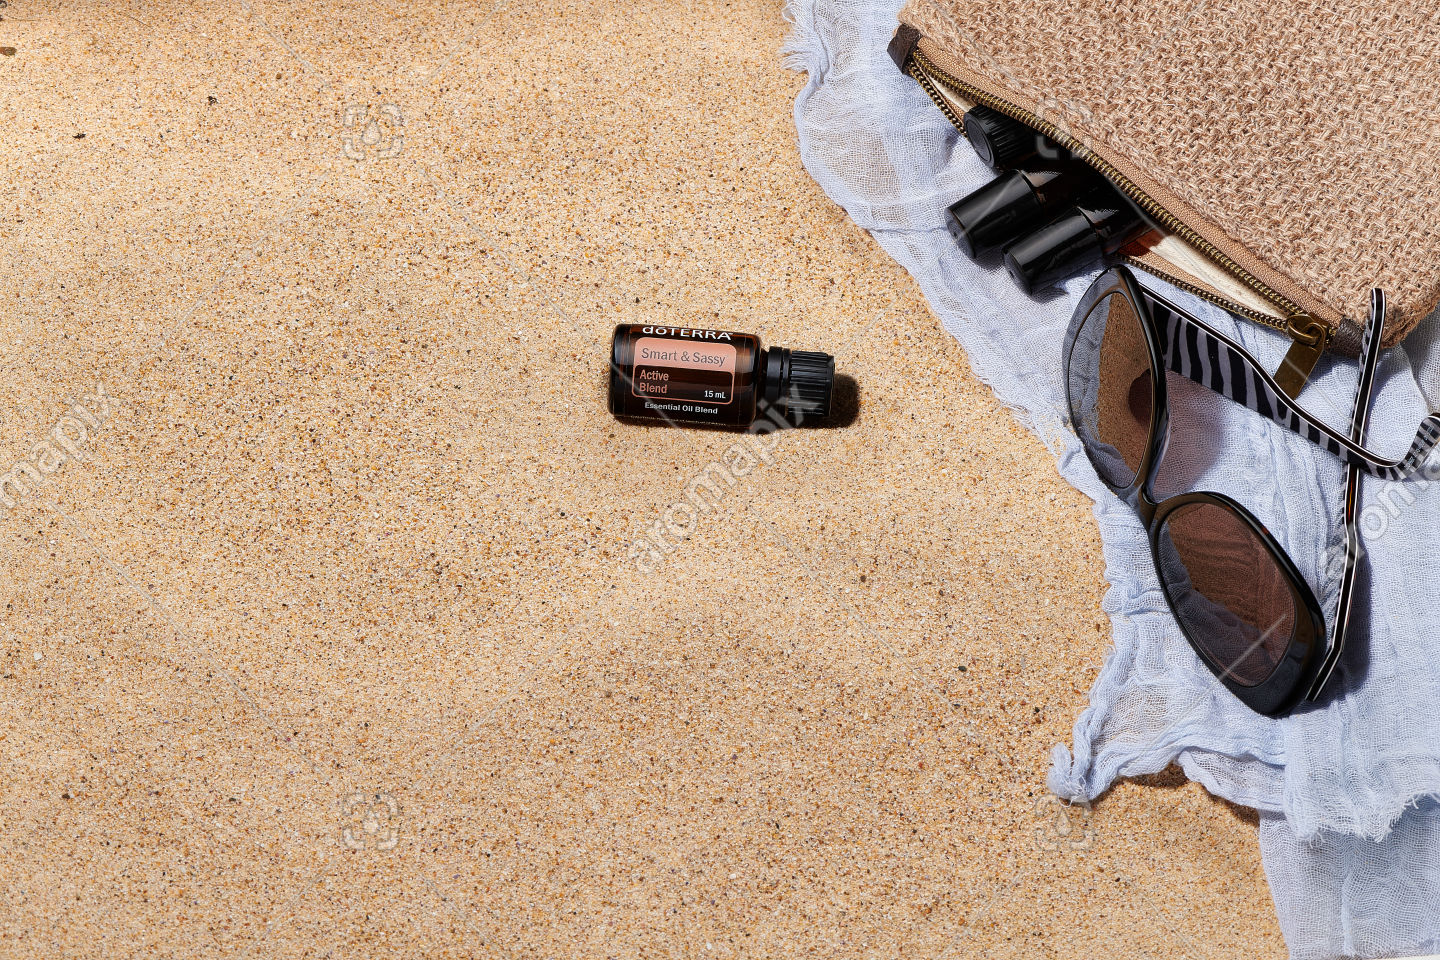 doTERRA Smart and Sassy with accessories on sand